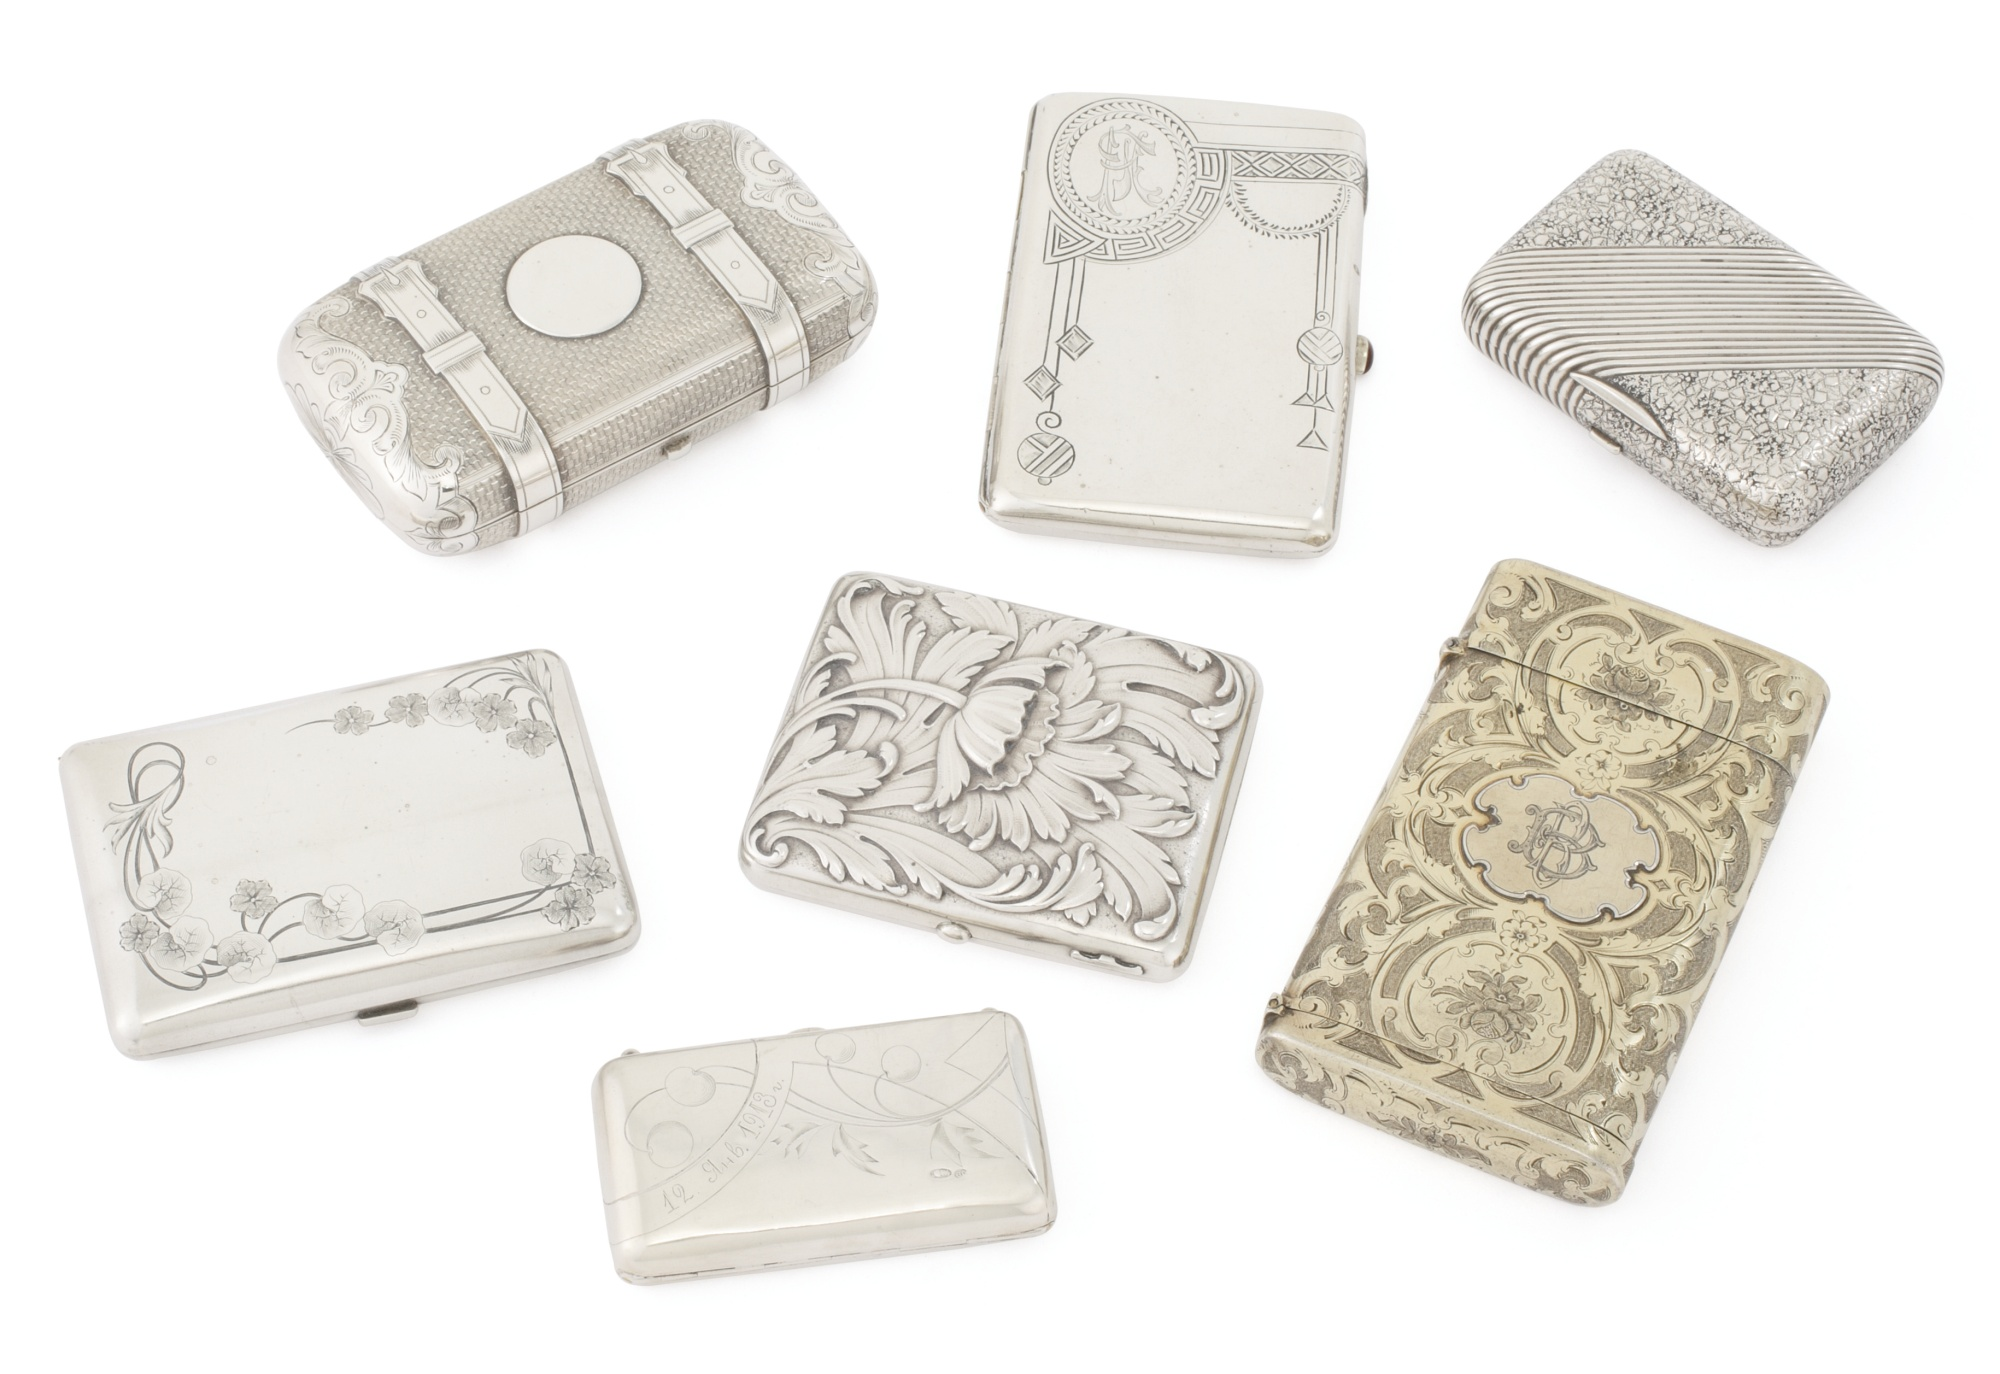 Six Russian silver cigarette cases